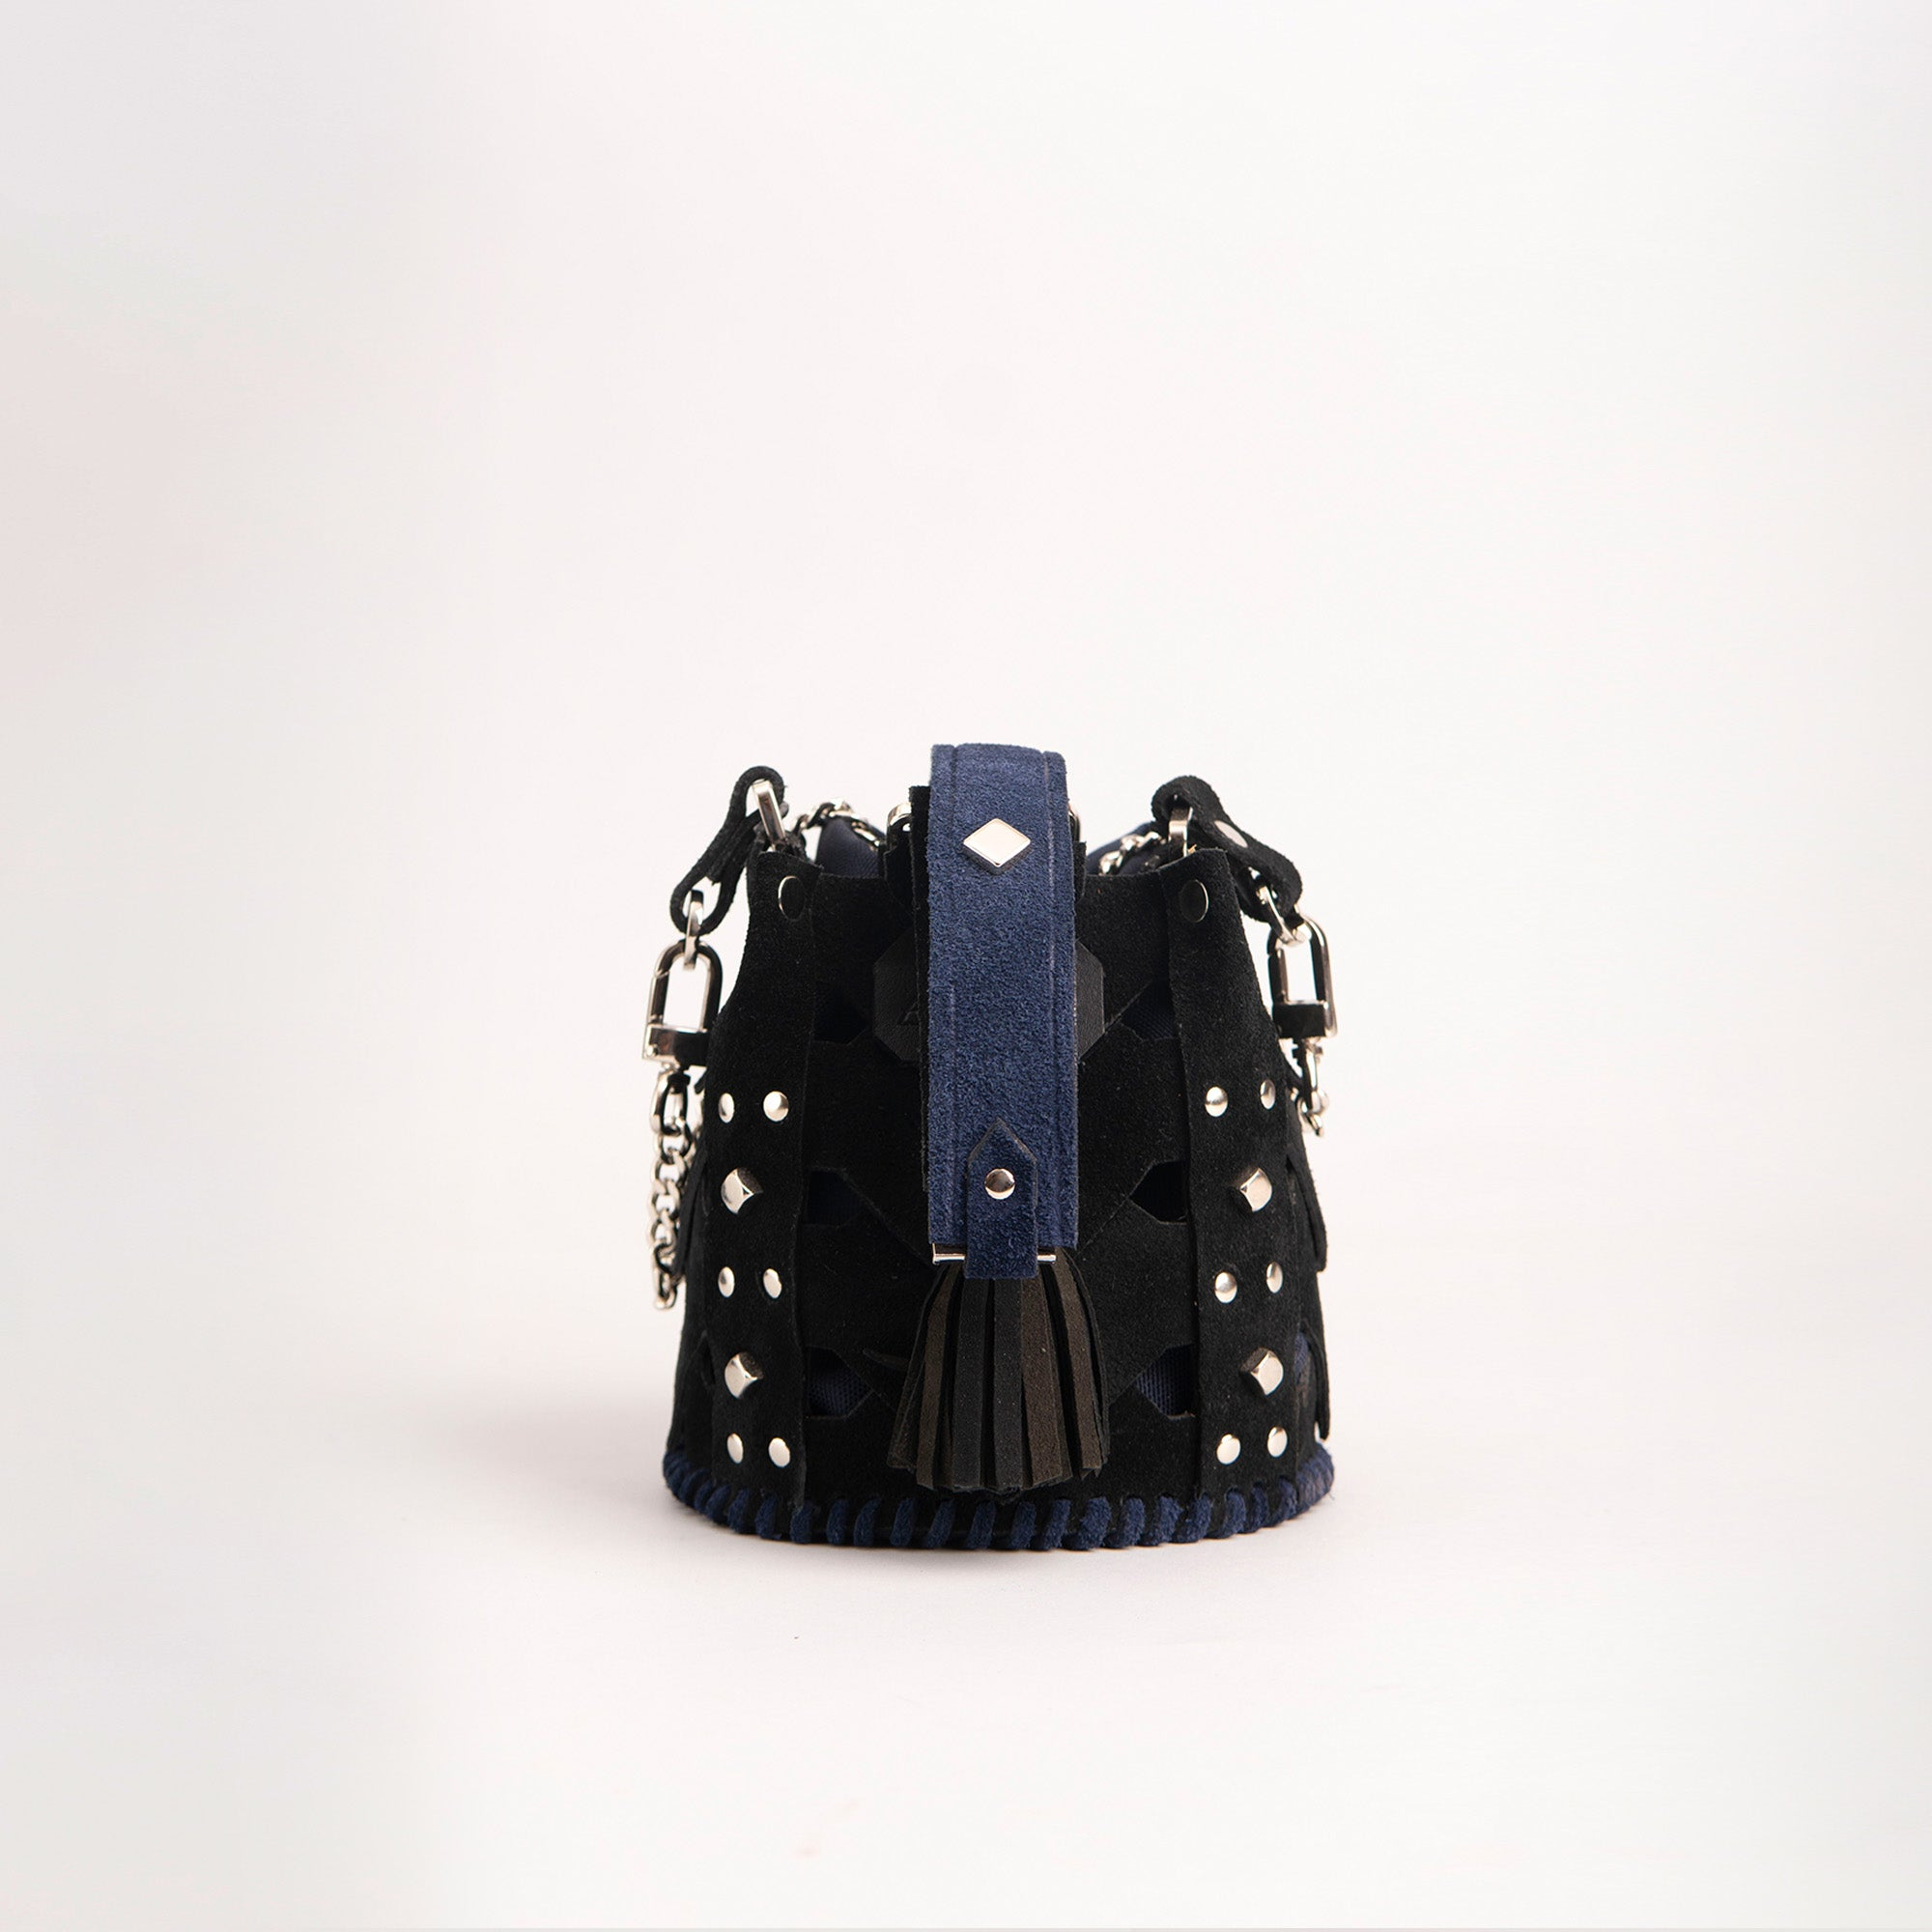 Vertebrae Mini, Black on Navy